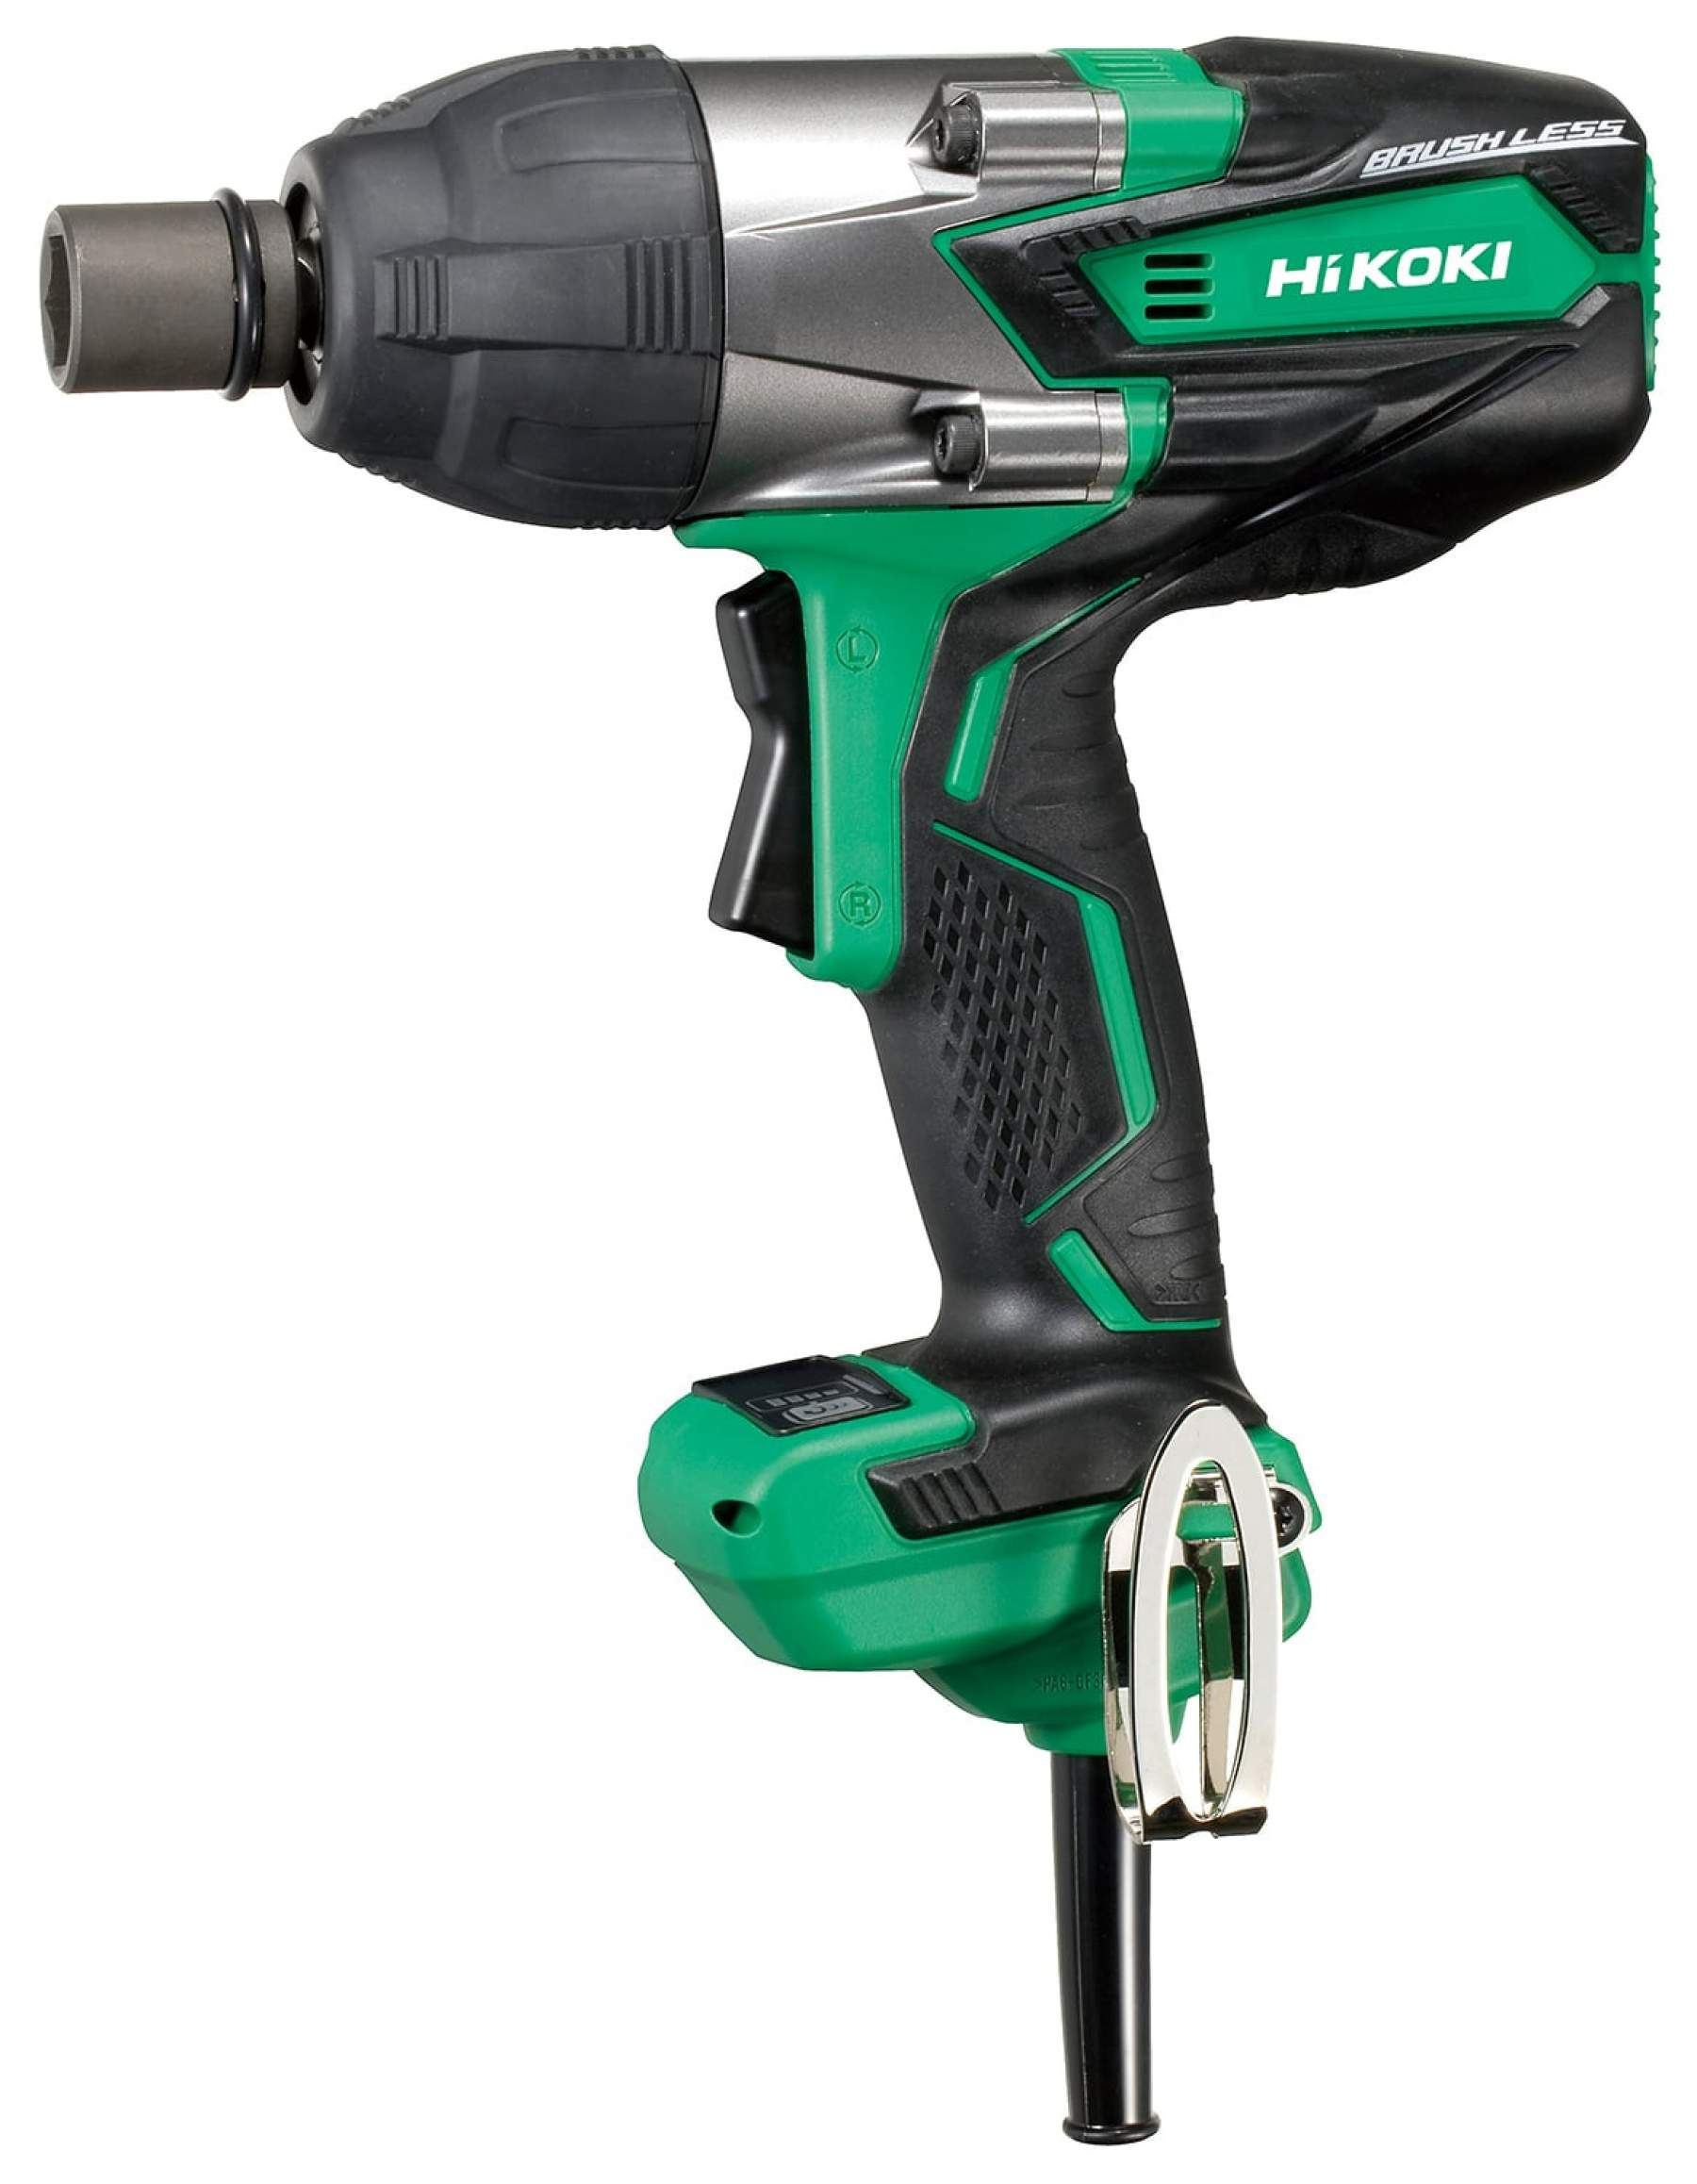 16mm Impact Wrench with Brushless Motor